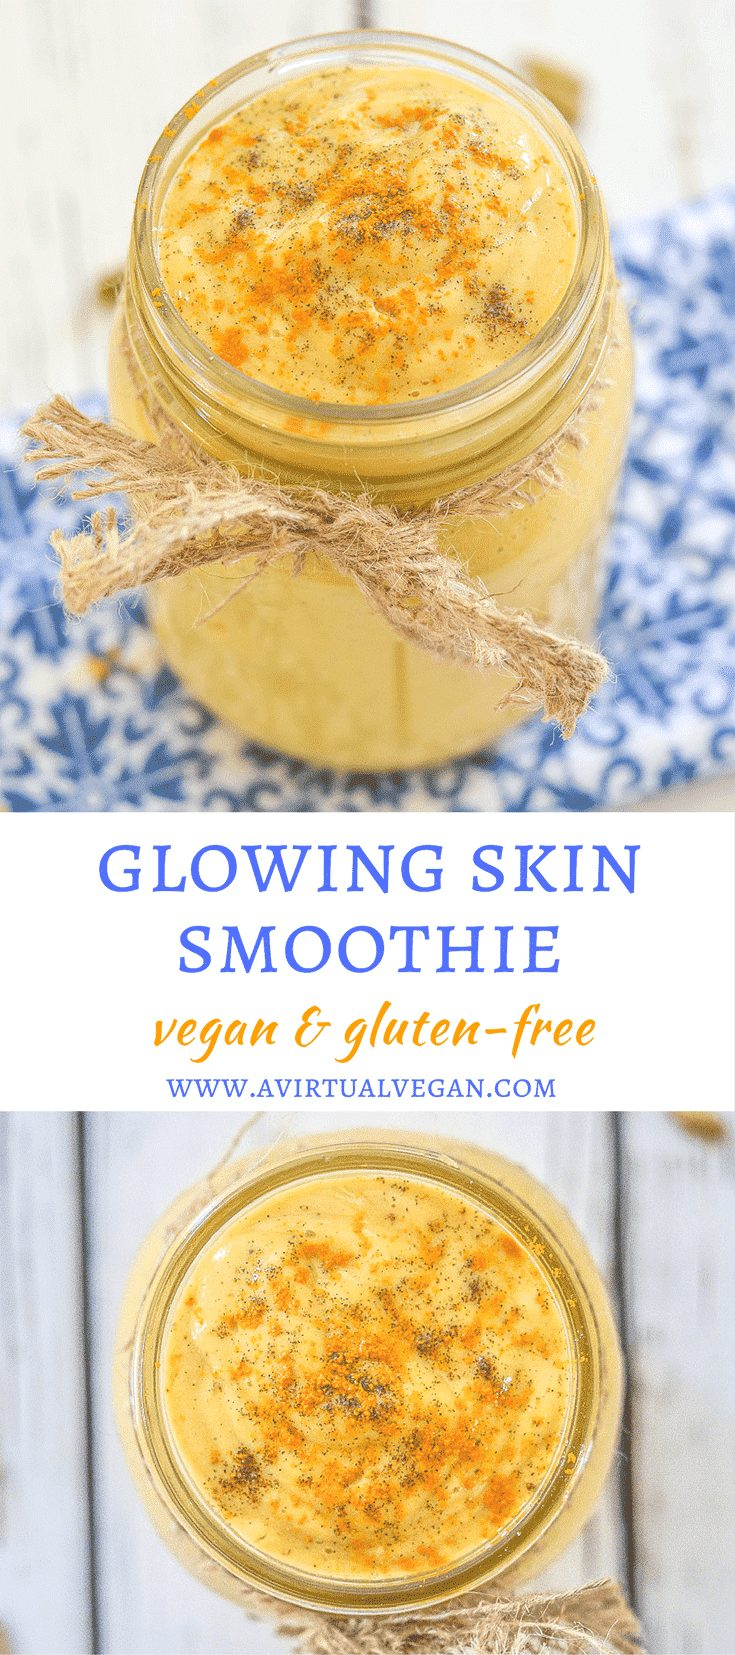 Start your day with this nourishing Glowing Skin Smoothie. It is packed with antioxidants & will leave you looking & feeling radiant both inside & out!